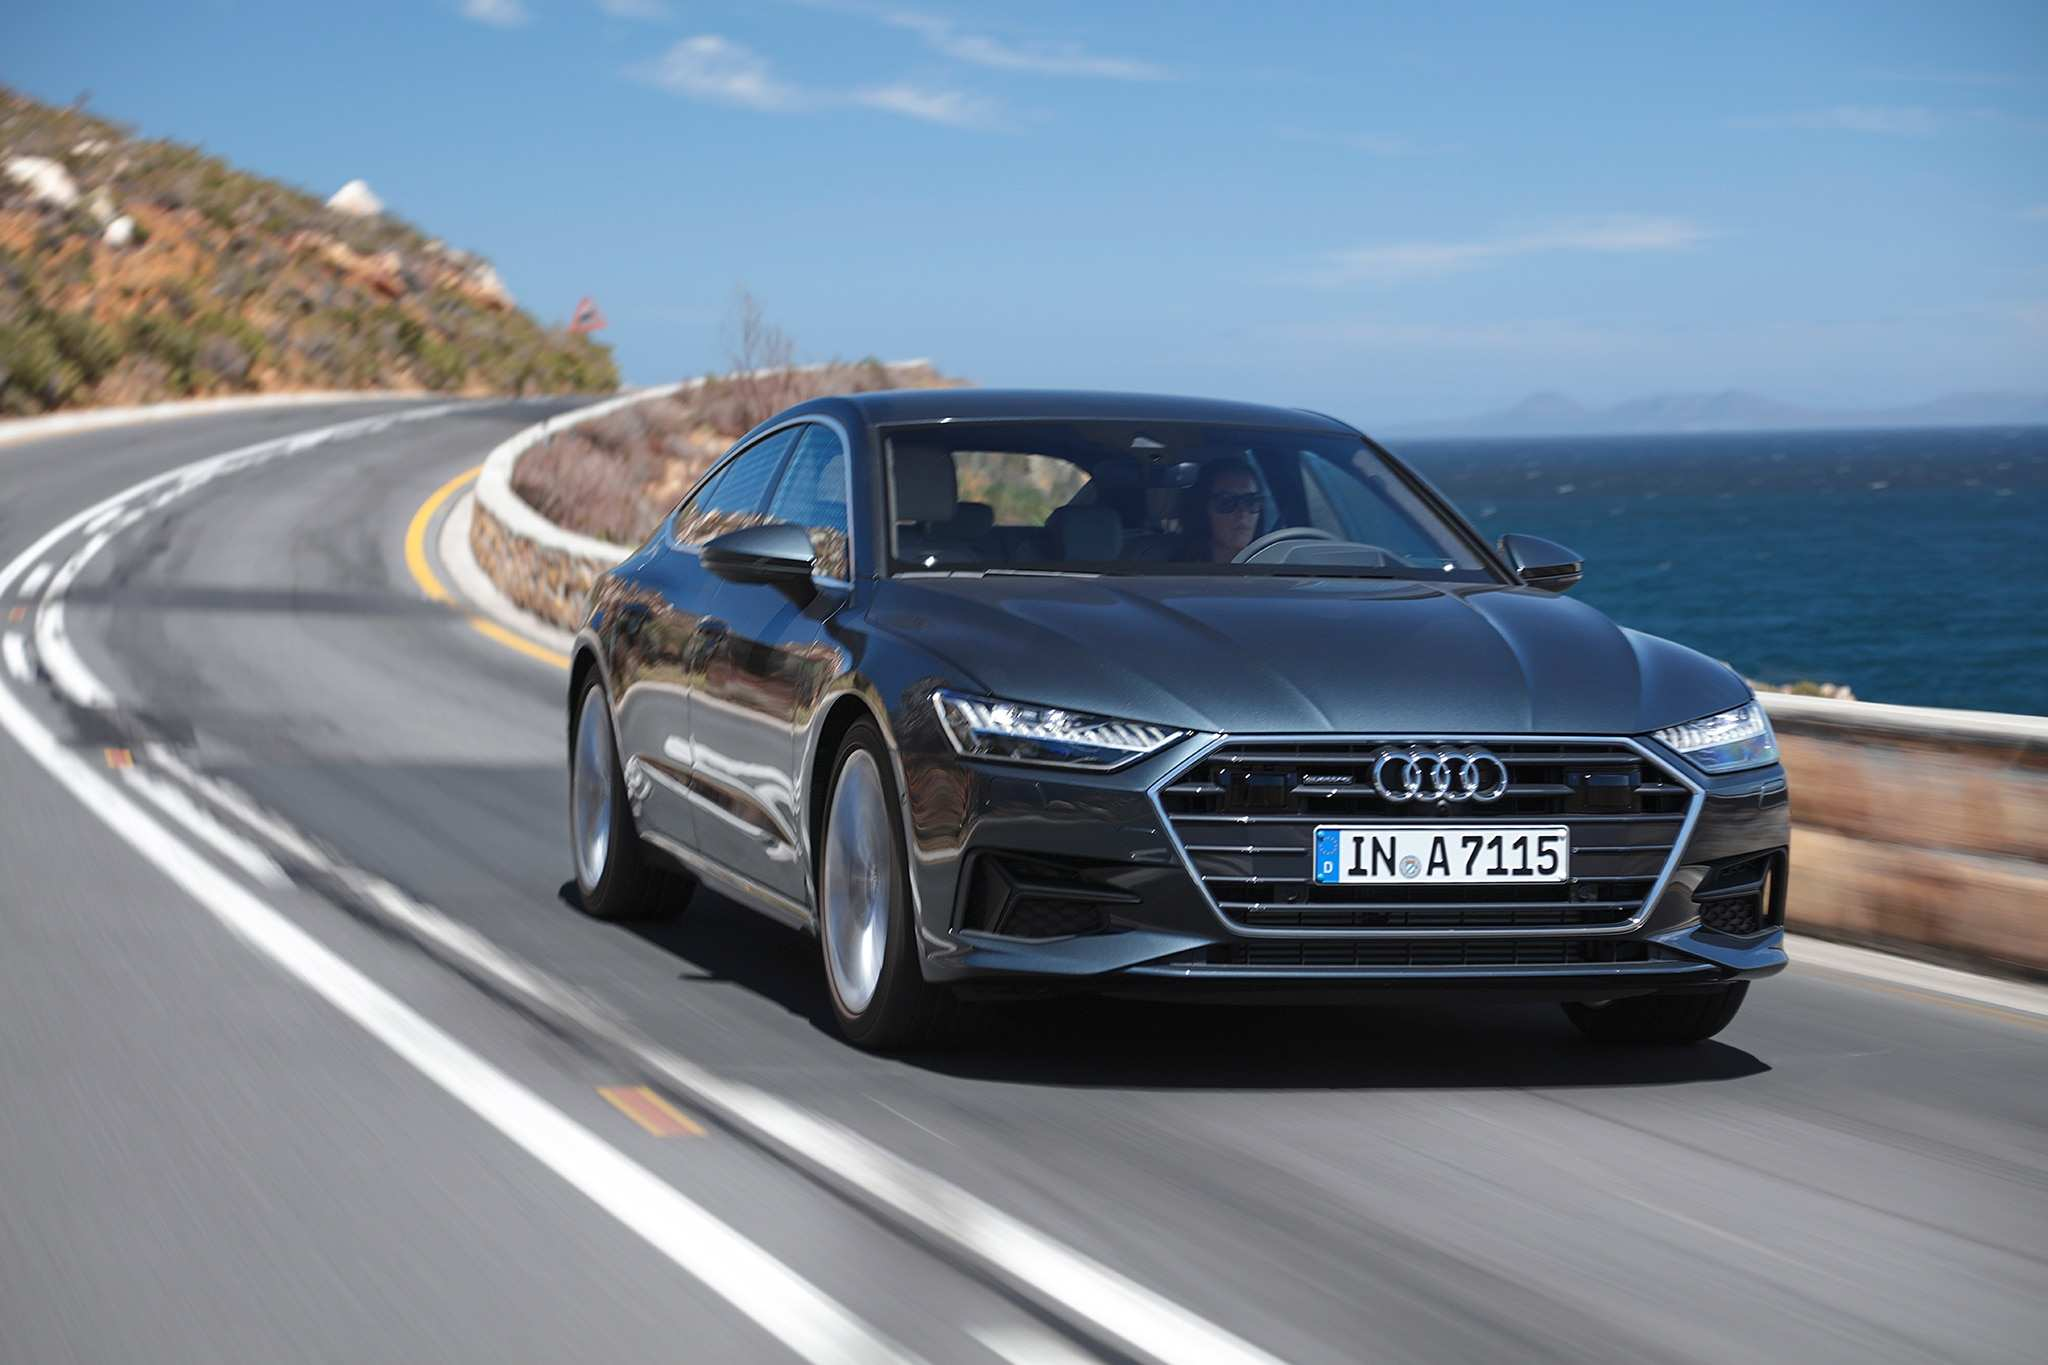 63 New 2019 Audi A7 Debut Price with 2019 Audi A7 Debut